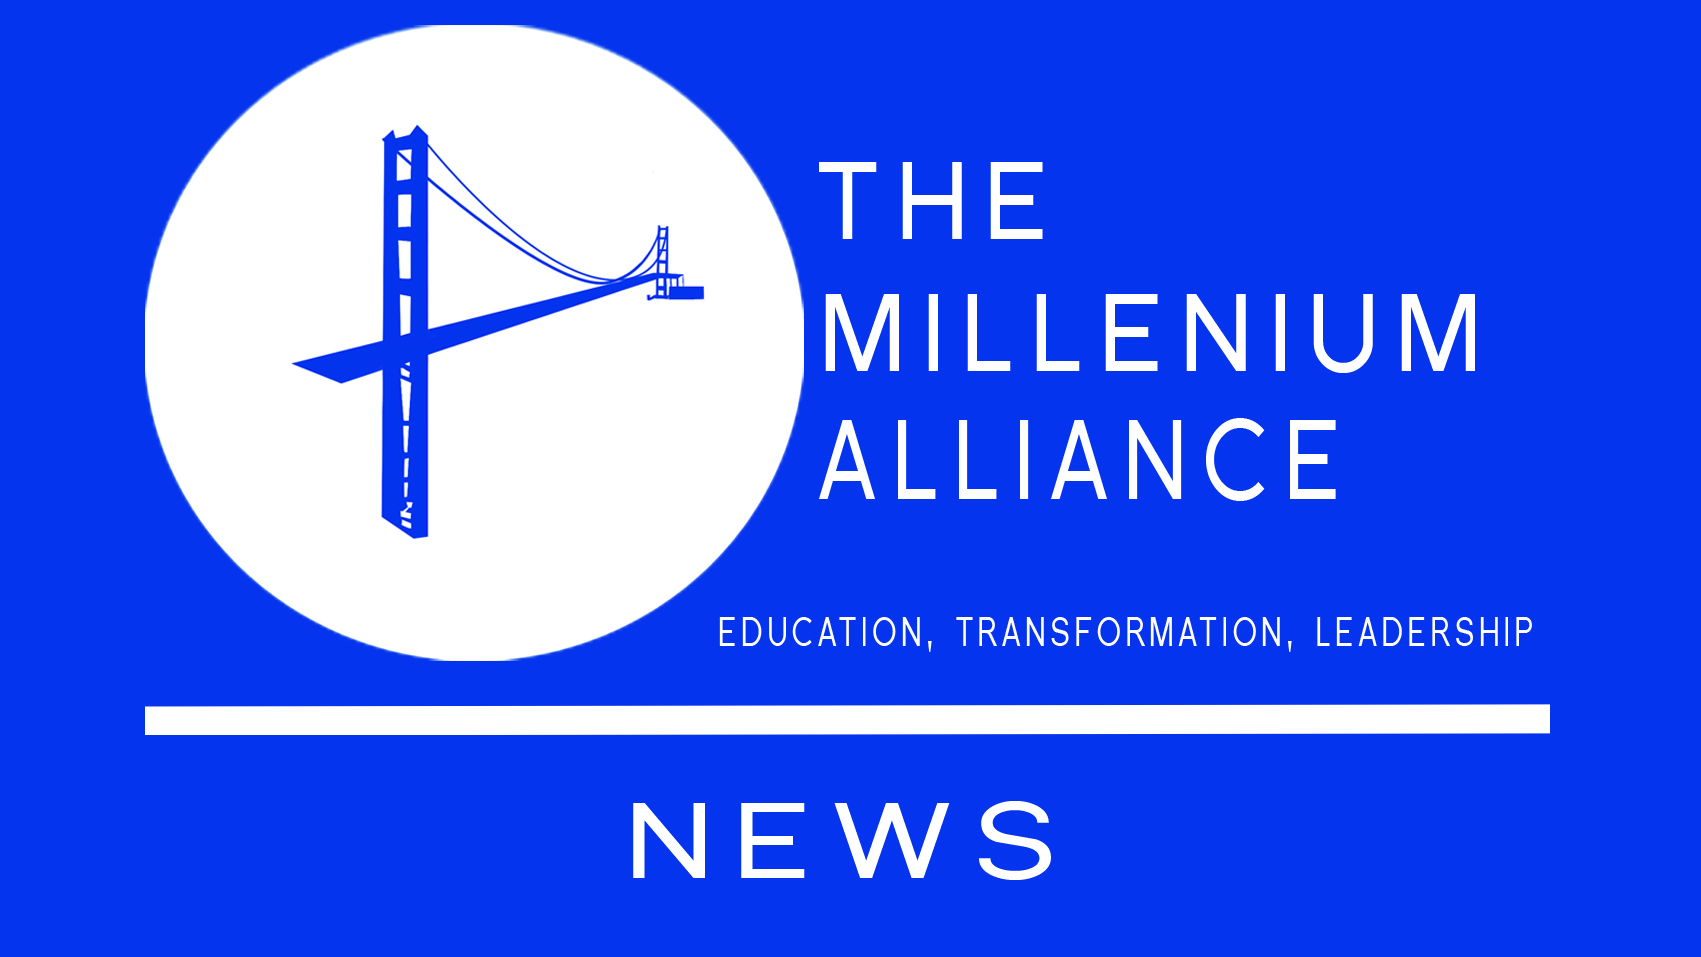 The Millenium Alliance News